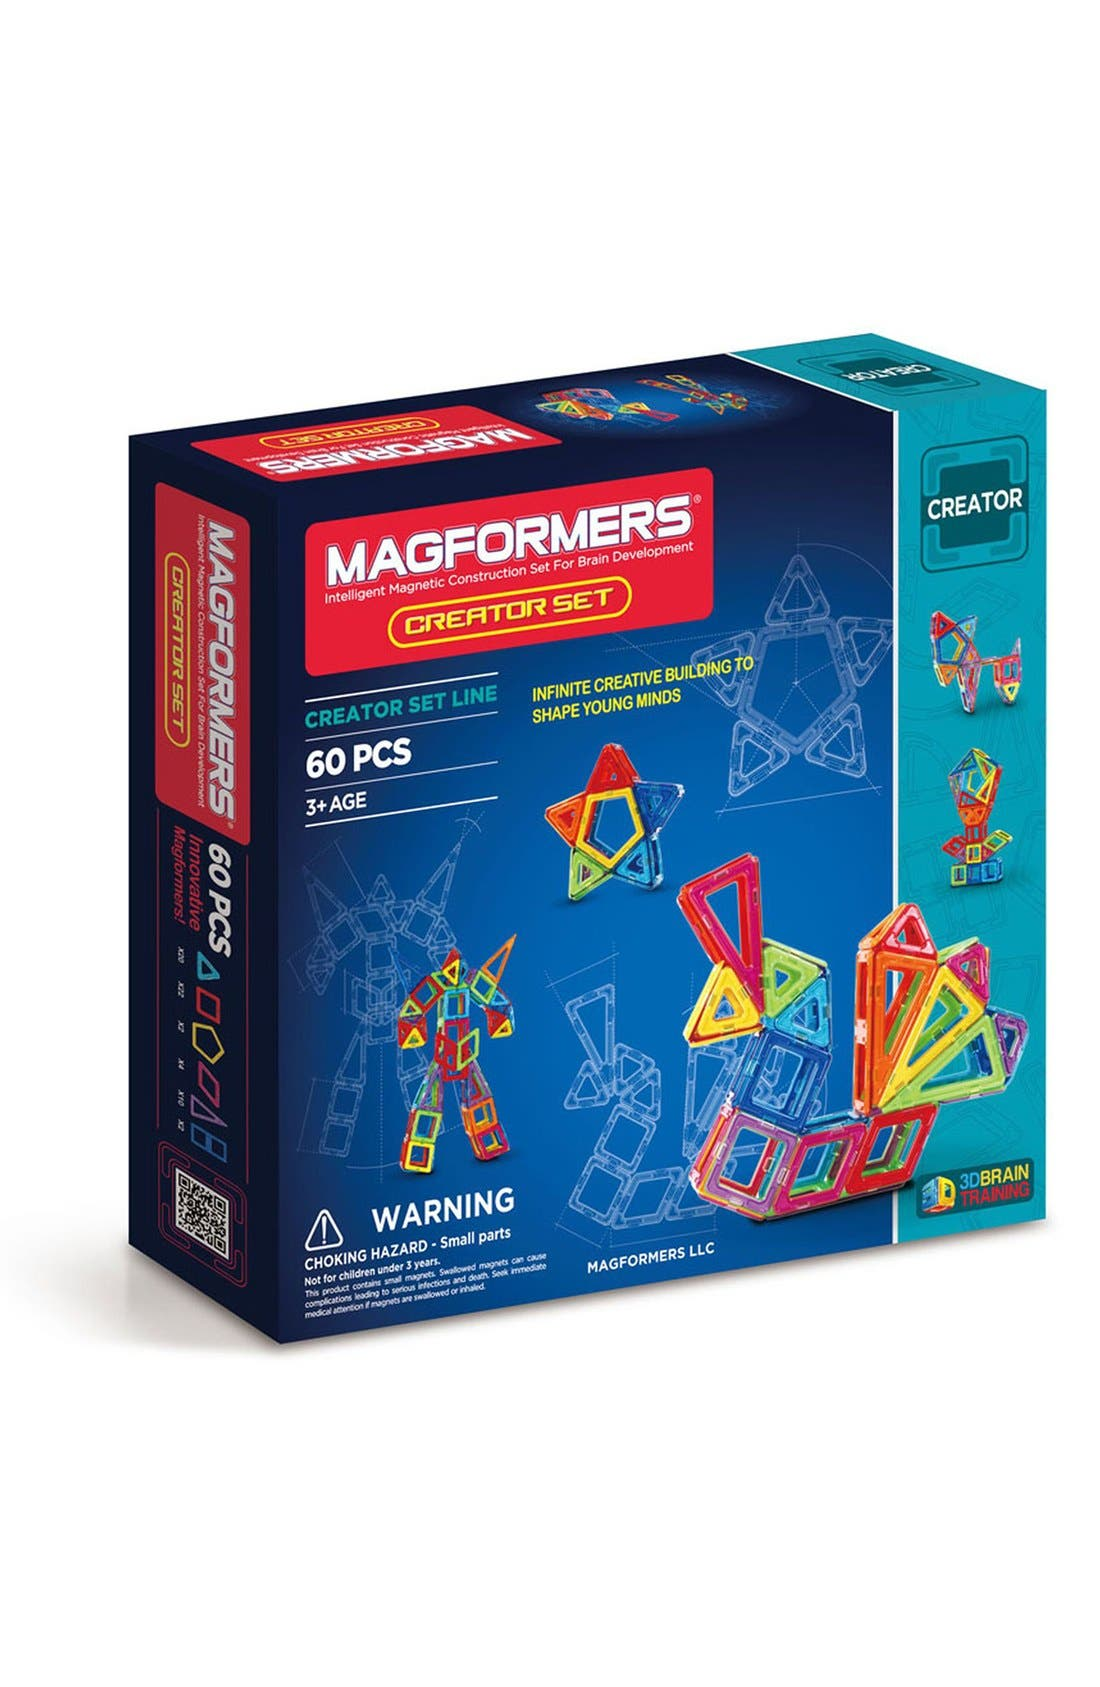 MAGFORMERS 'Creator' Magnetic 3D Construction Set